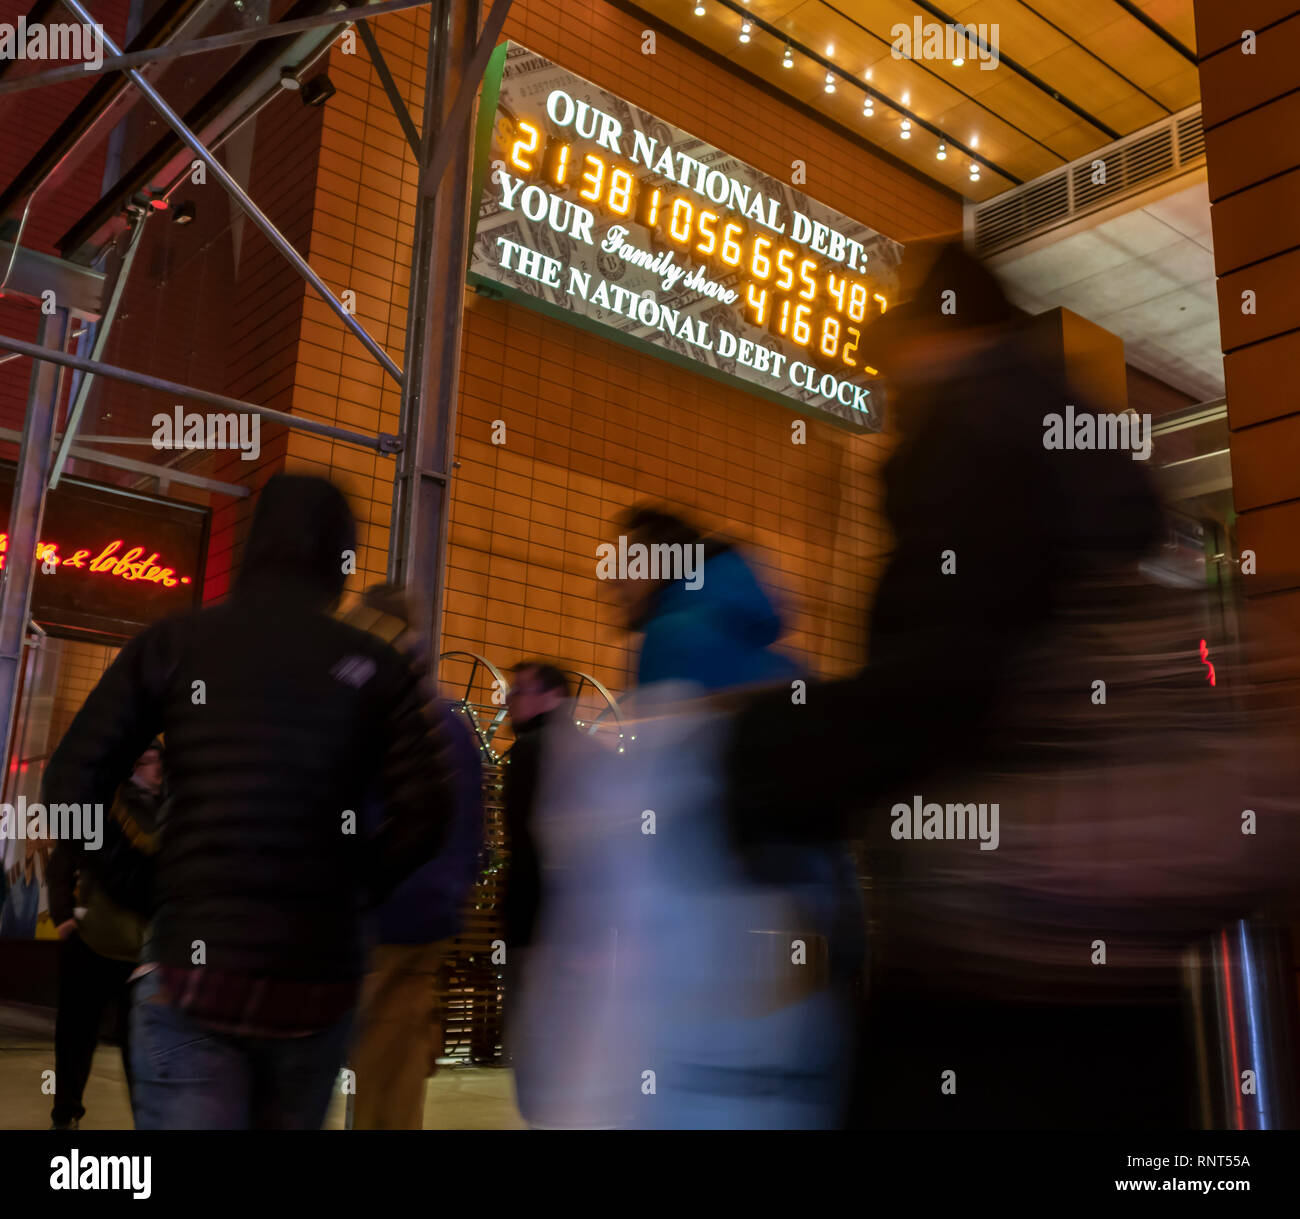 The National Debt Clock is seen in New York on Wednesday, February 13, 2019. Despite the clock being out of sync, the U.S. Treasury Dept. reported that the U.S. National Debt has surpassed $22 trillion. (© Richard B. Levine) - Stock Image